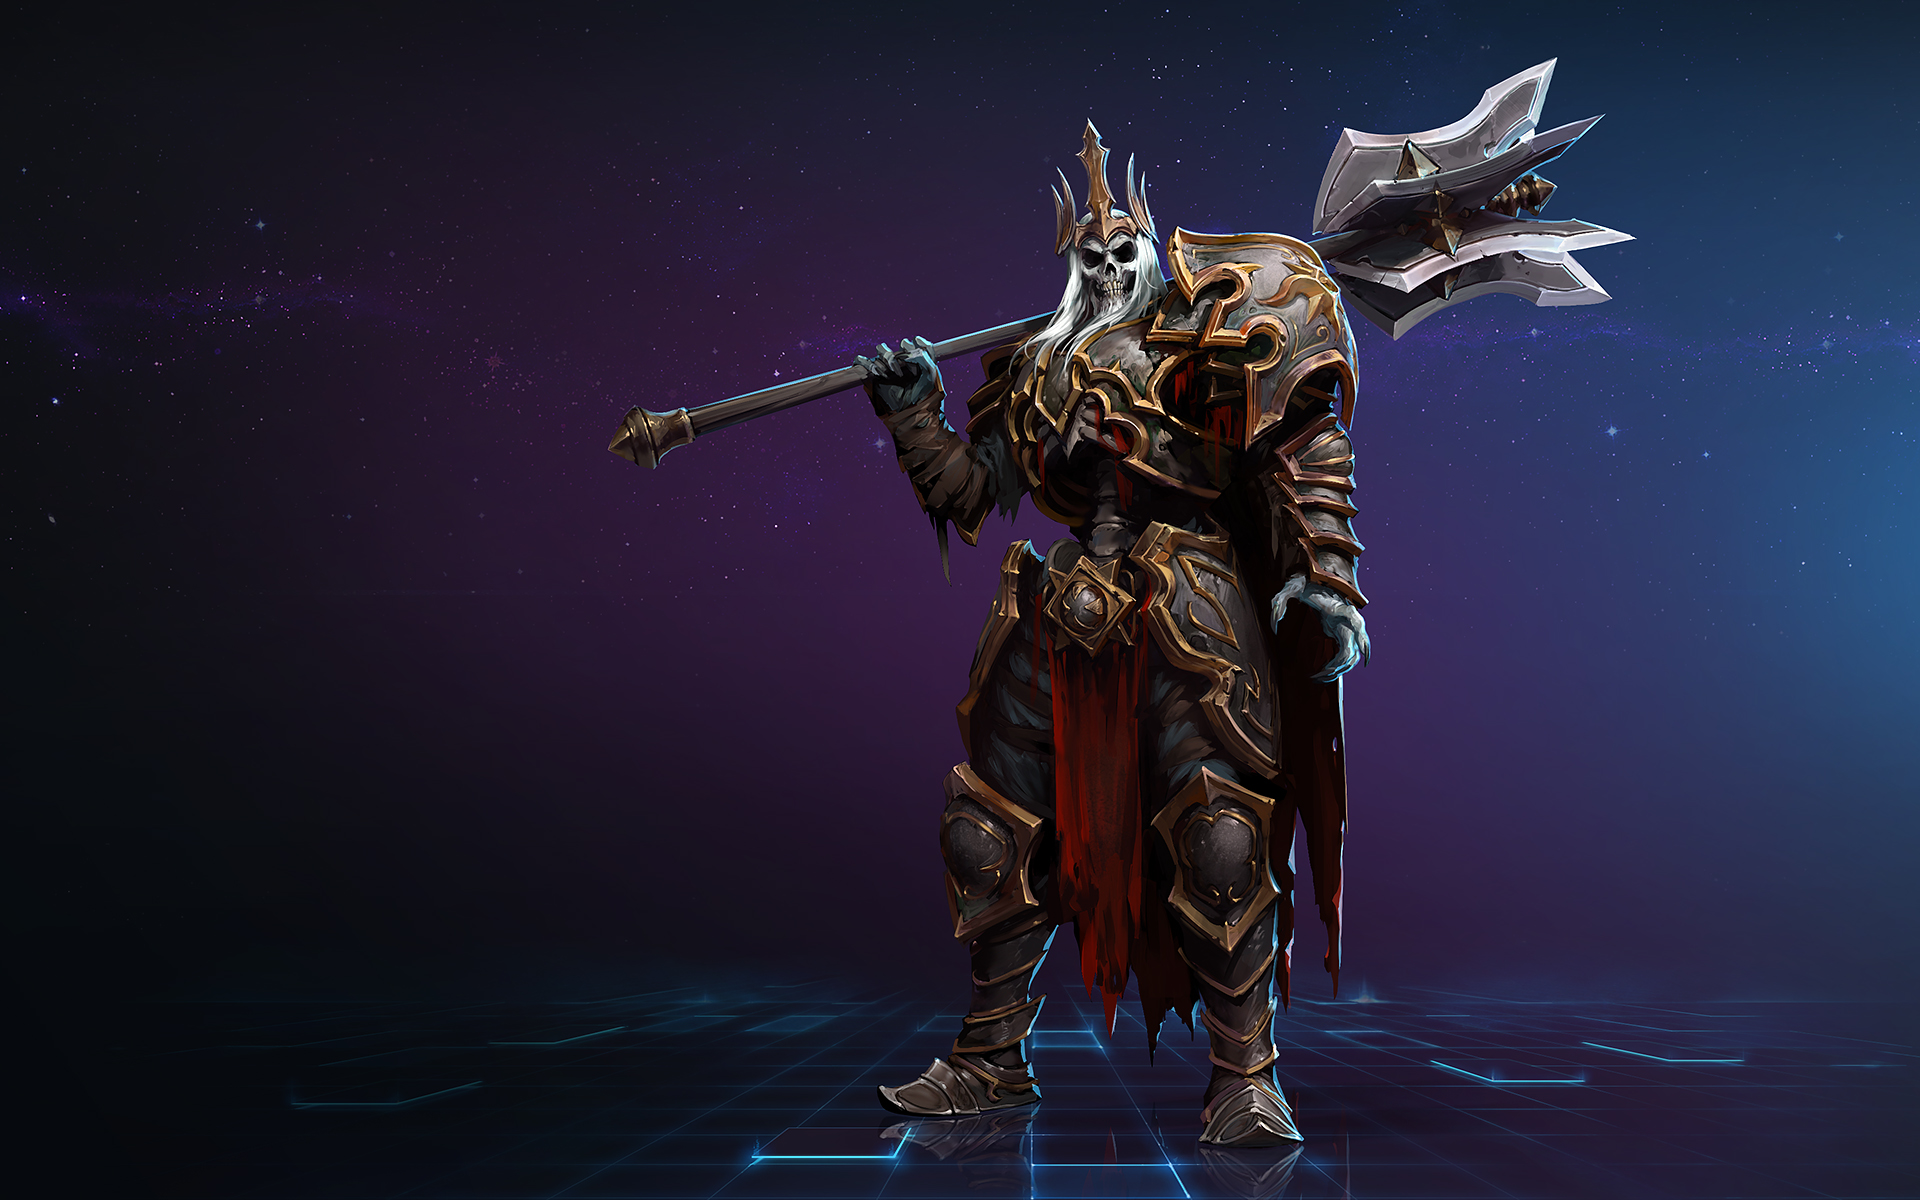 Leoric Heroes Of The Storm Wiki 02 апр 2016 в 18:02. leoric heroes of the storm wiki